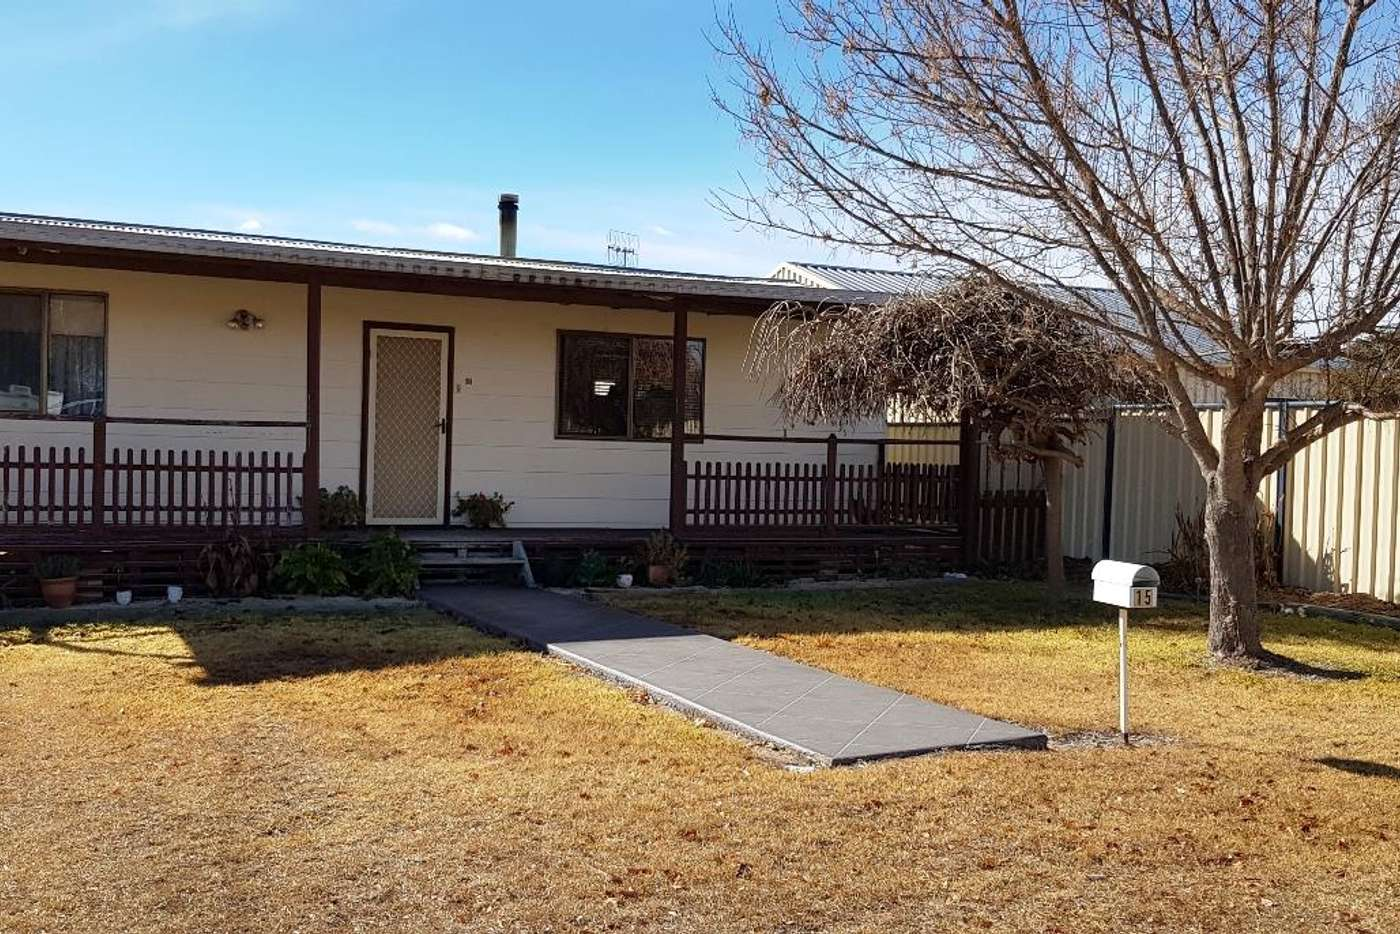 Main view of Homely house listing, 15 Dumaresq Street, Uralla NSW 2358